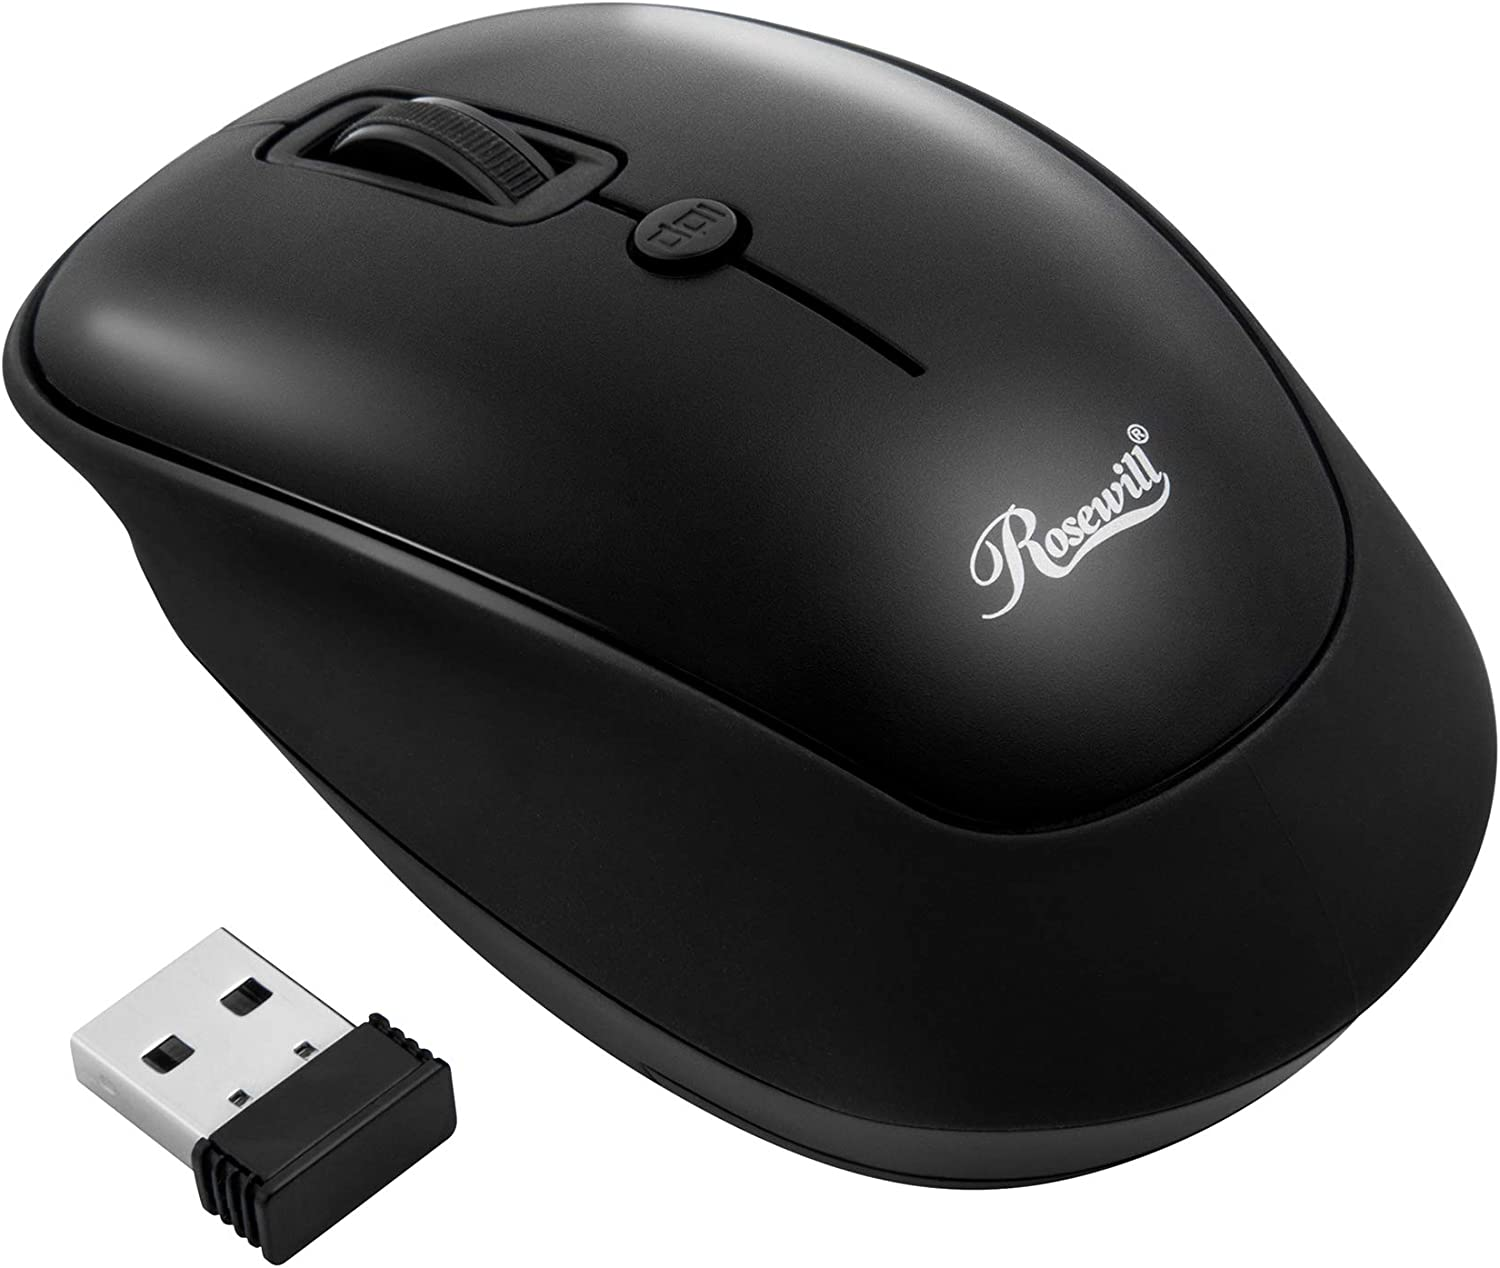 Rosewill RWM-001 Portable Cordless Compact Travel Mouse, Optical Sensor, USB Wireless Receiver, Adjustable DPI, 4 Buttons, Office Style for Laptop, Notebook, PC, Computer, MacBook, Black